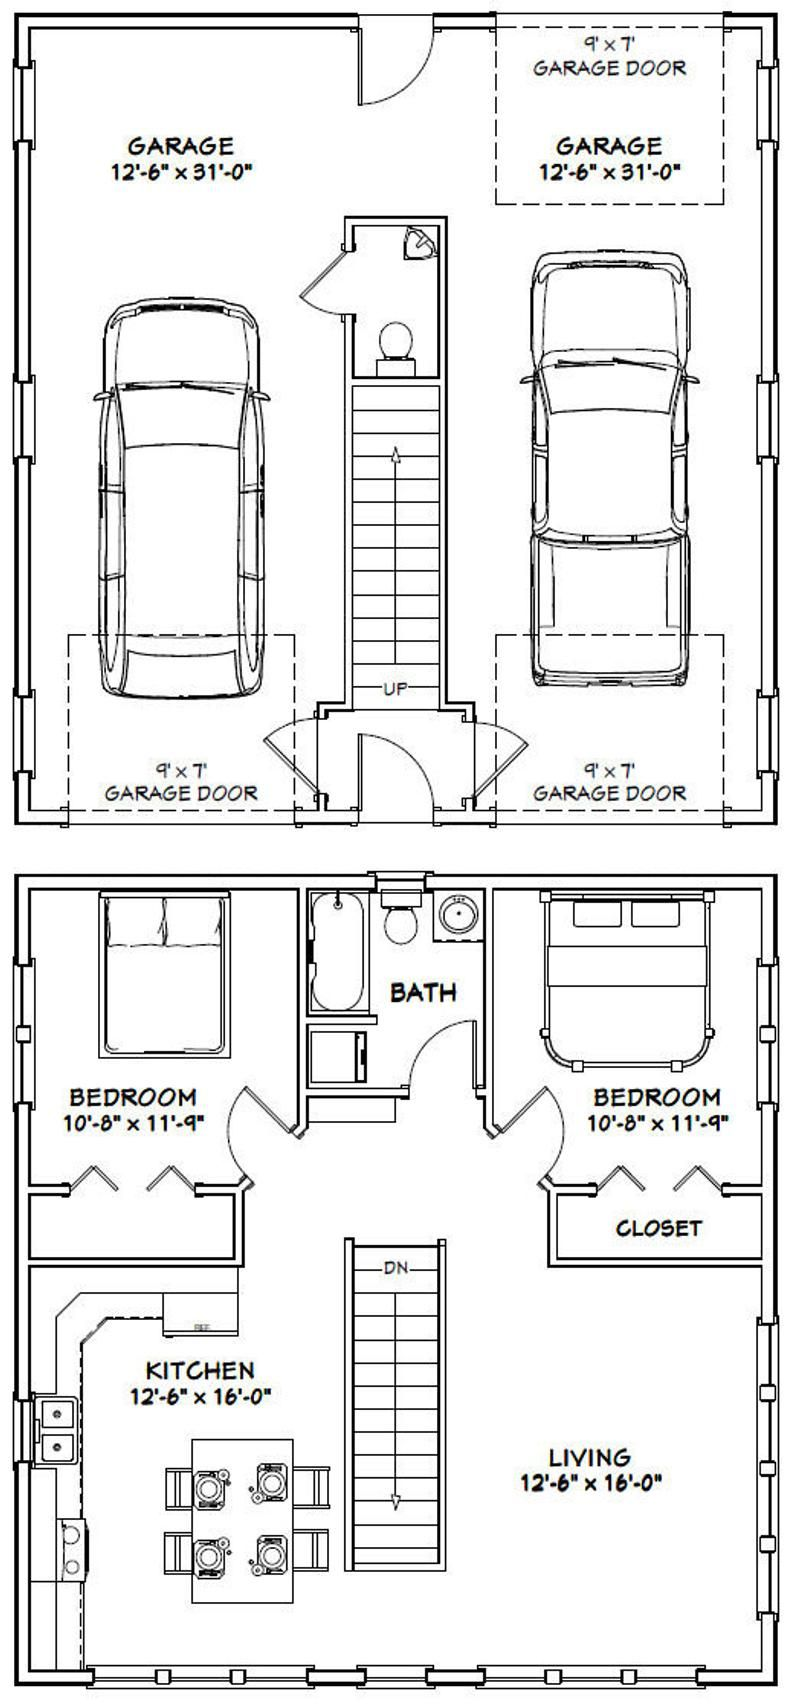 30x32 House 2Bedroom 1.5 Bath 961 sq ft PDF